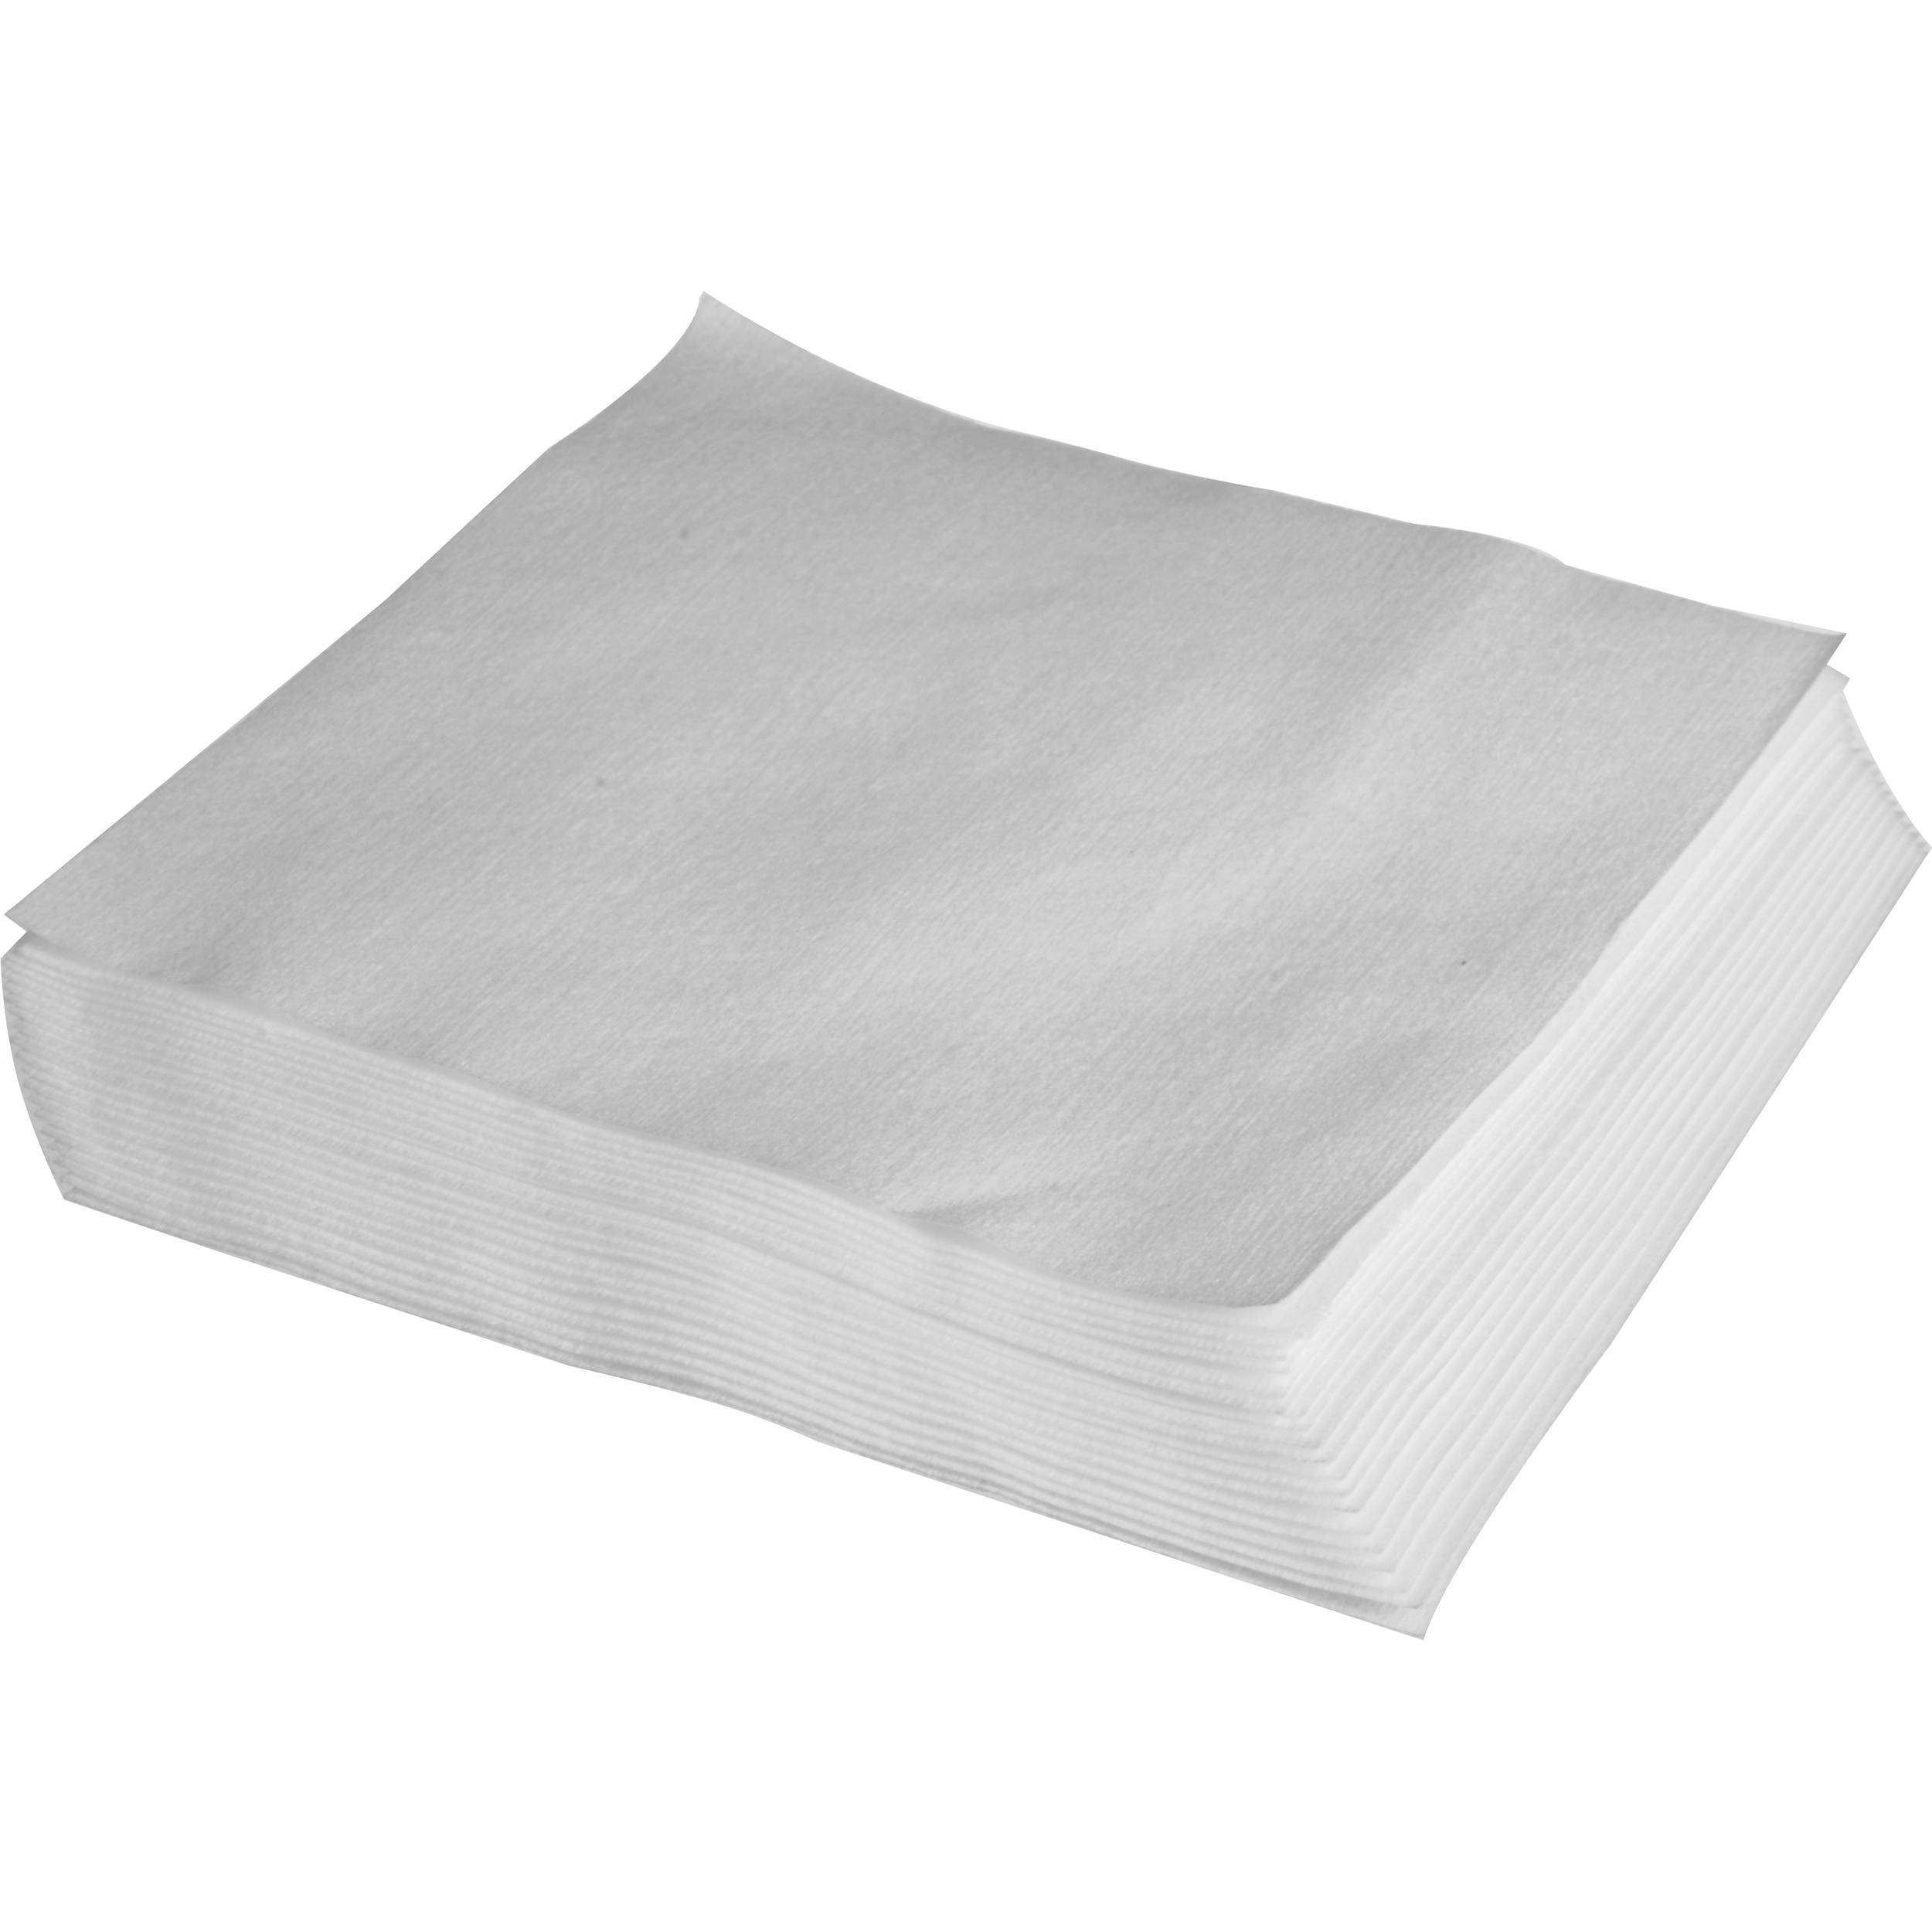 Fujitsu Cleaning Wipes  24 Sheets. Fujitsu Cleaning Wipes  24 Sheets  PA03950 0419 B H Photo Video